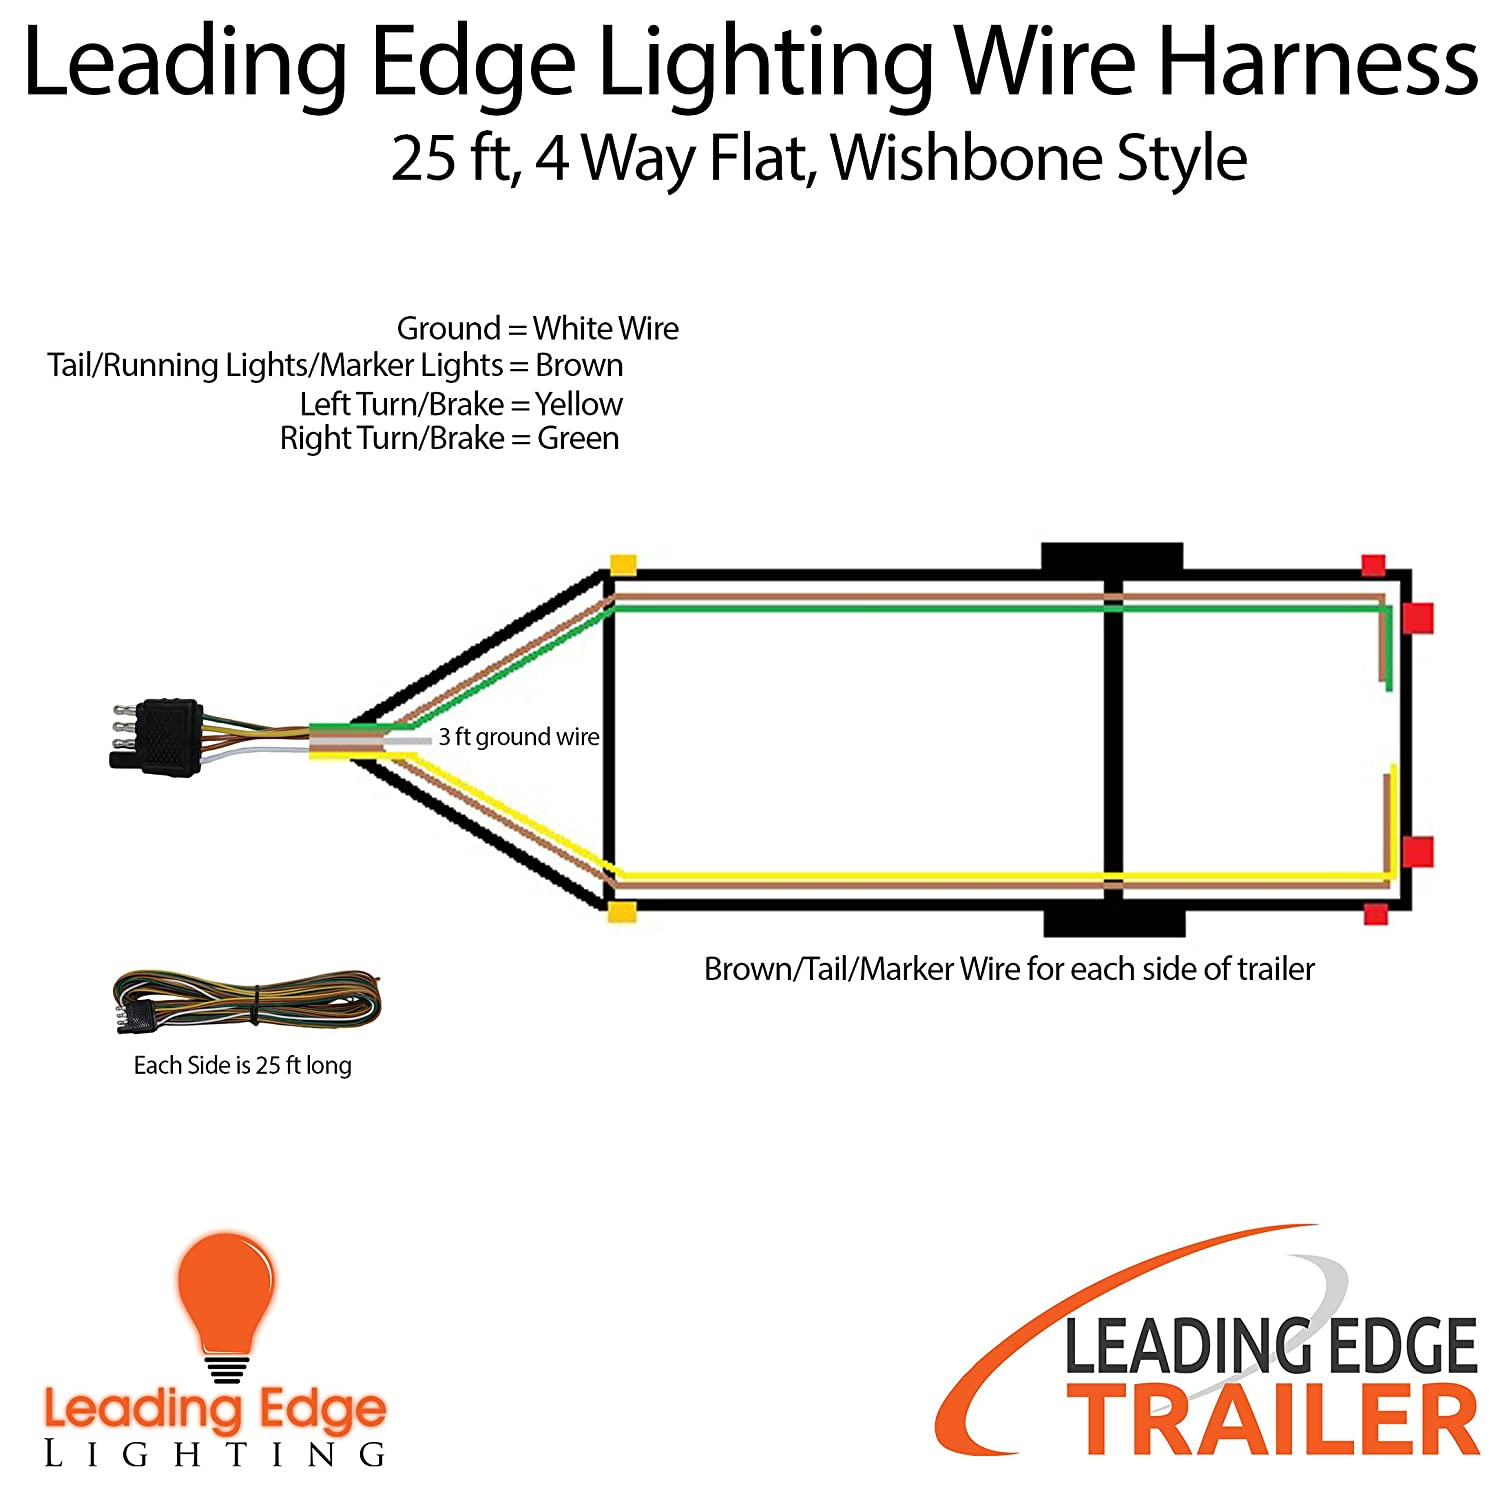 amazon com wishbone style trailer wiring harness with 4 flat rh amazon com trailer wiring harness for sale trailer wiring harness installation